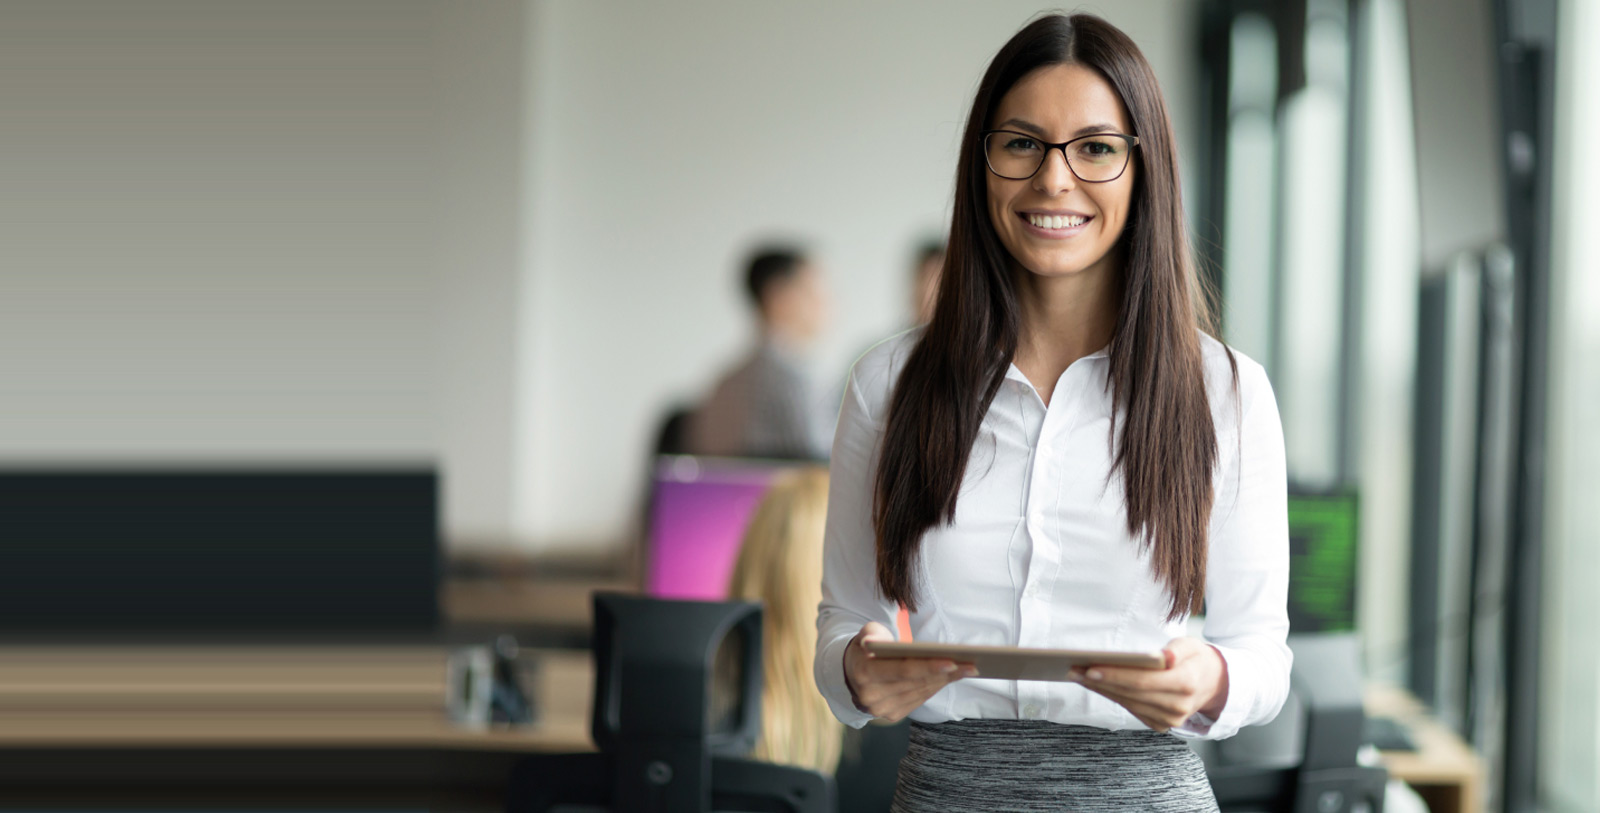 Female office worker holding a tablet